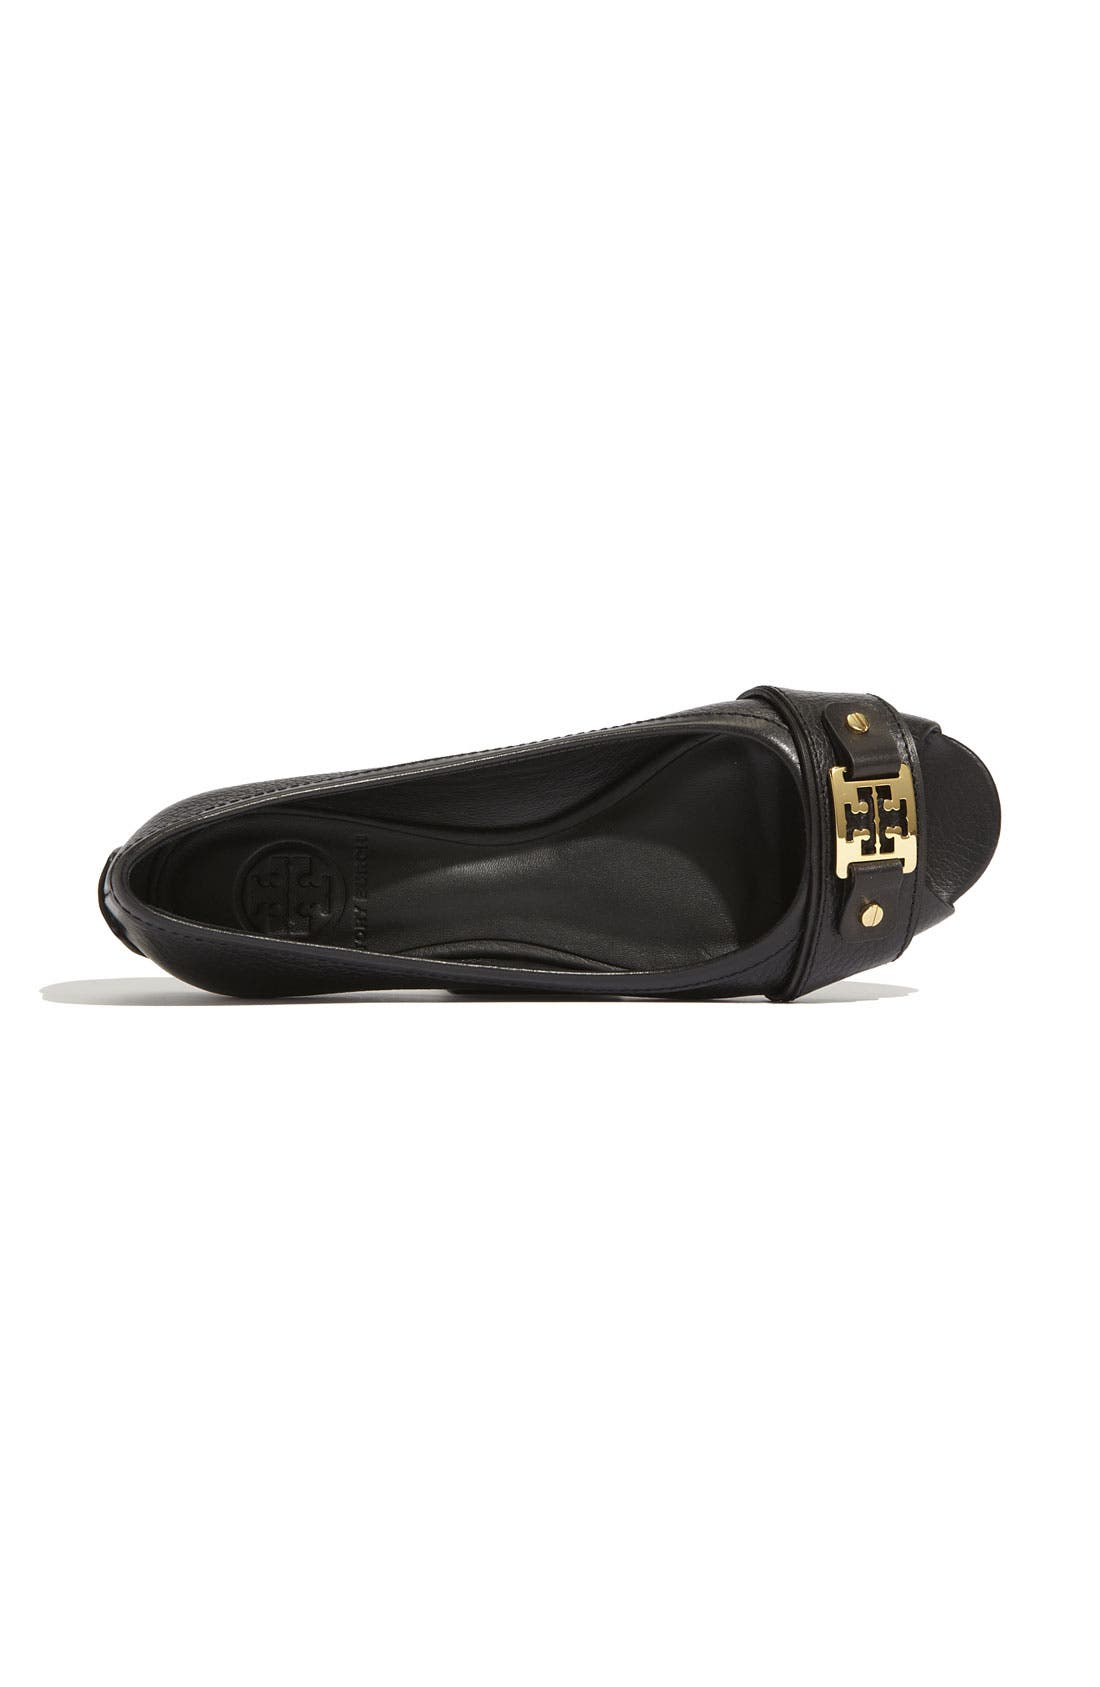 Alternate Image 3  - Tory Burch 'Clines' Ballet Flat